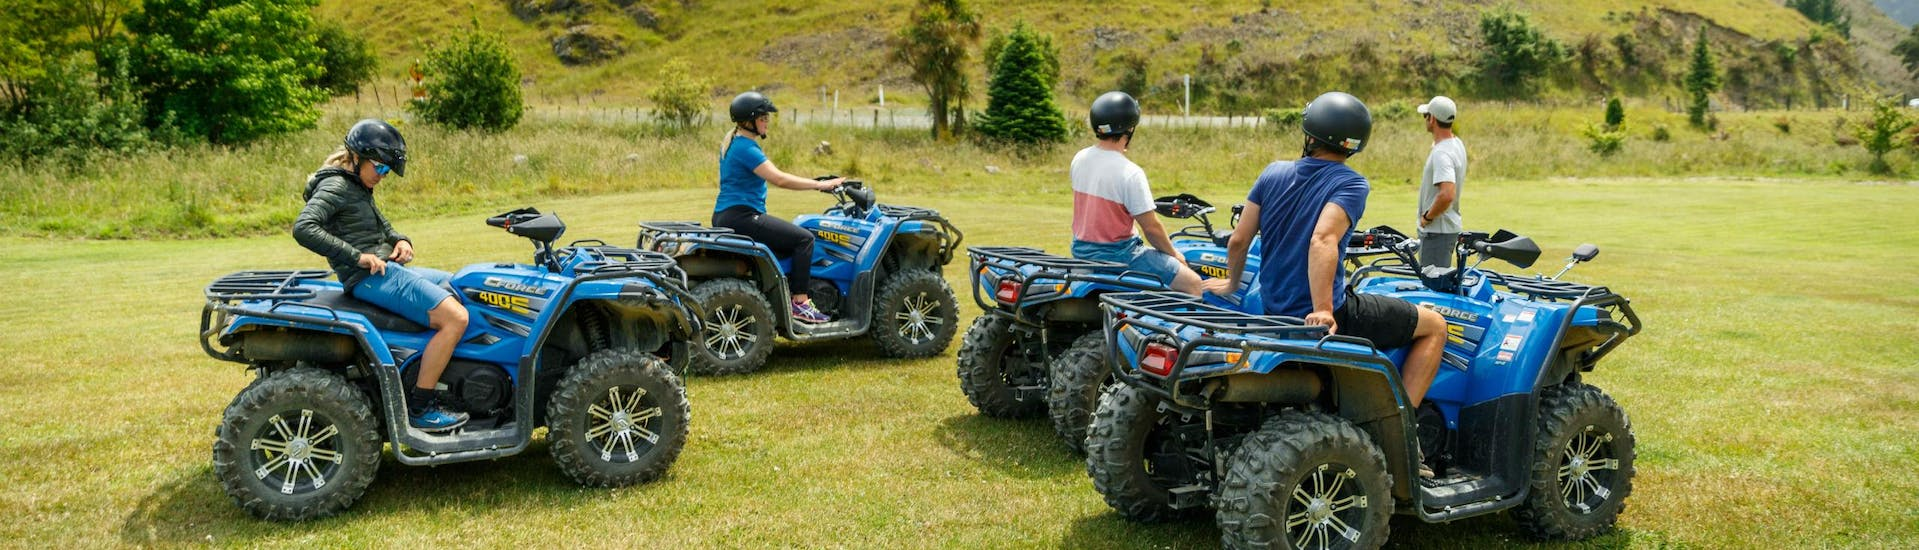 quad-biking-in-nelson-farm-forest-ride-cable-bay-adventure-park-nelson-hero